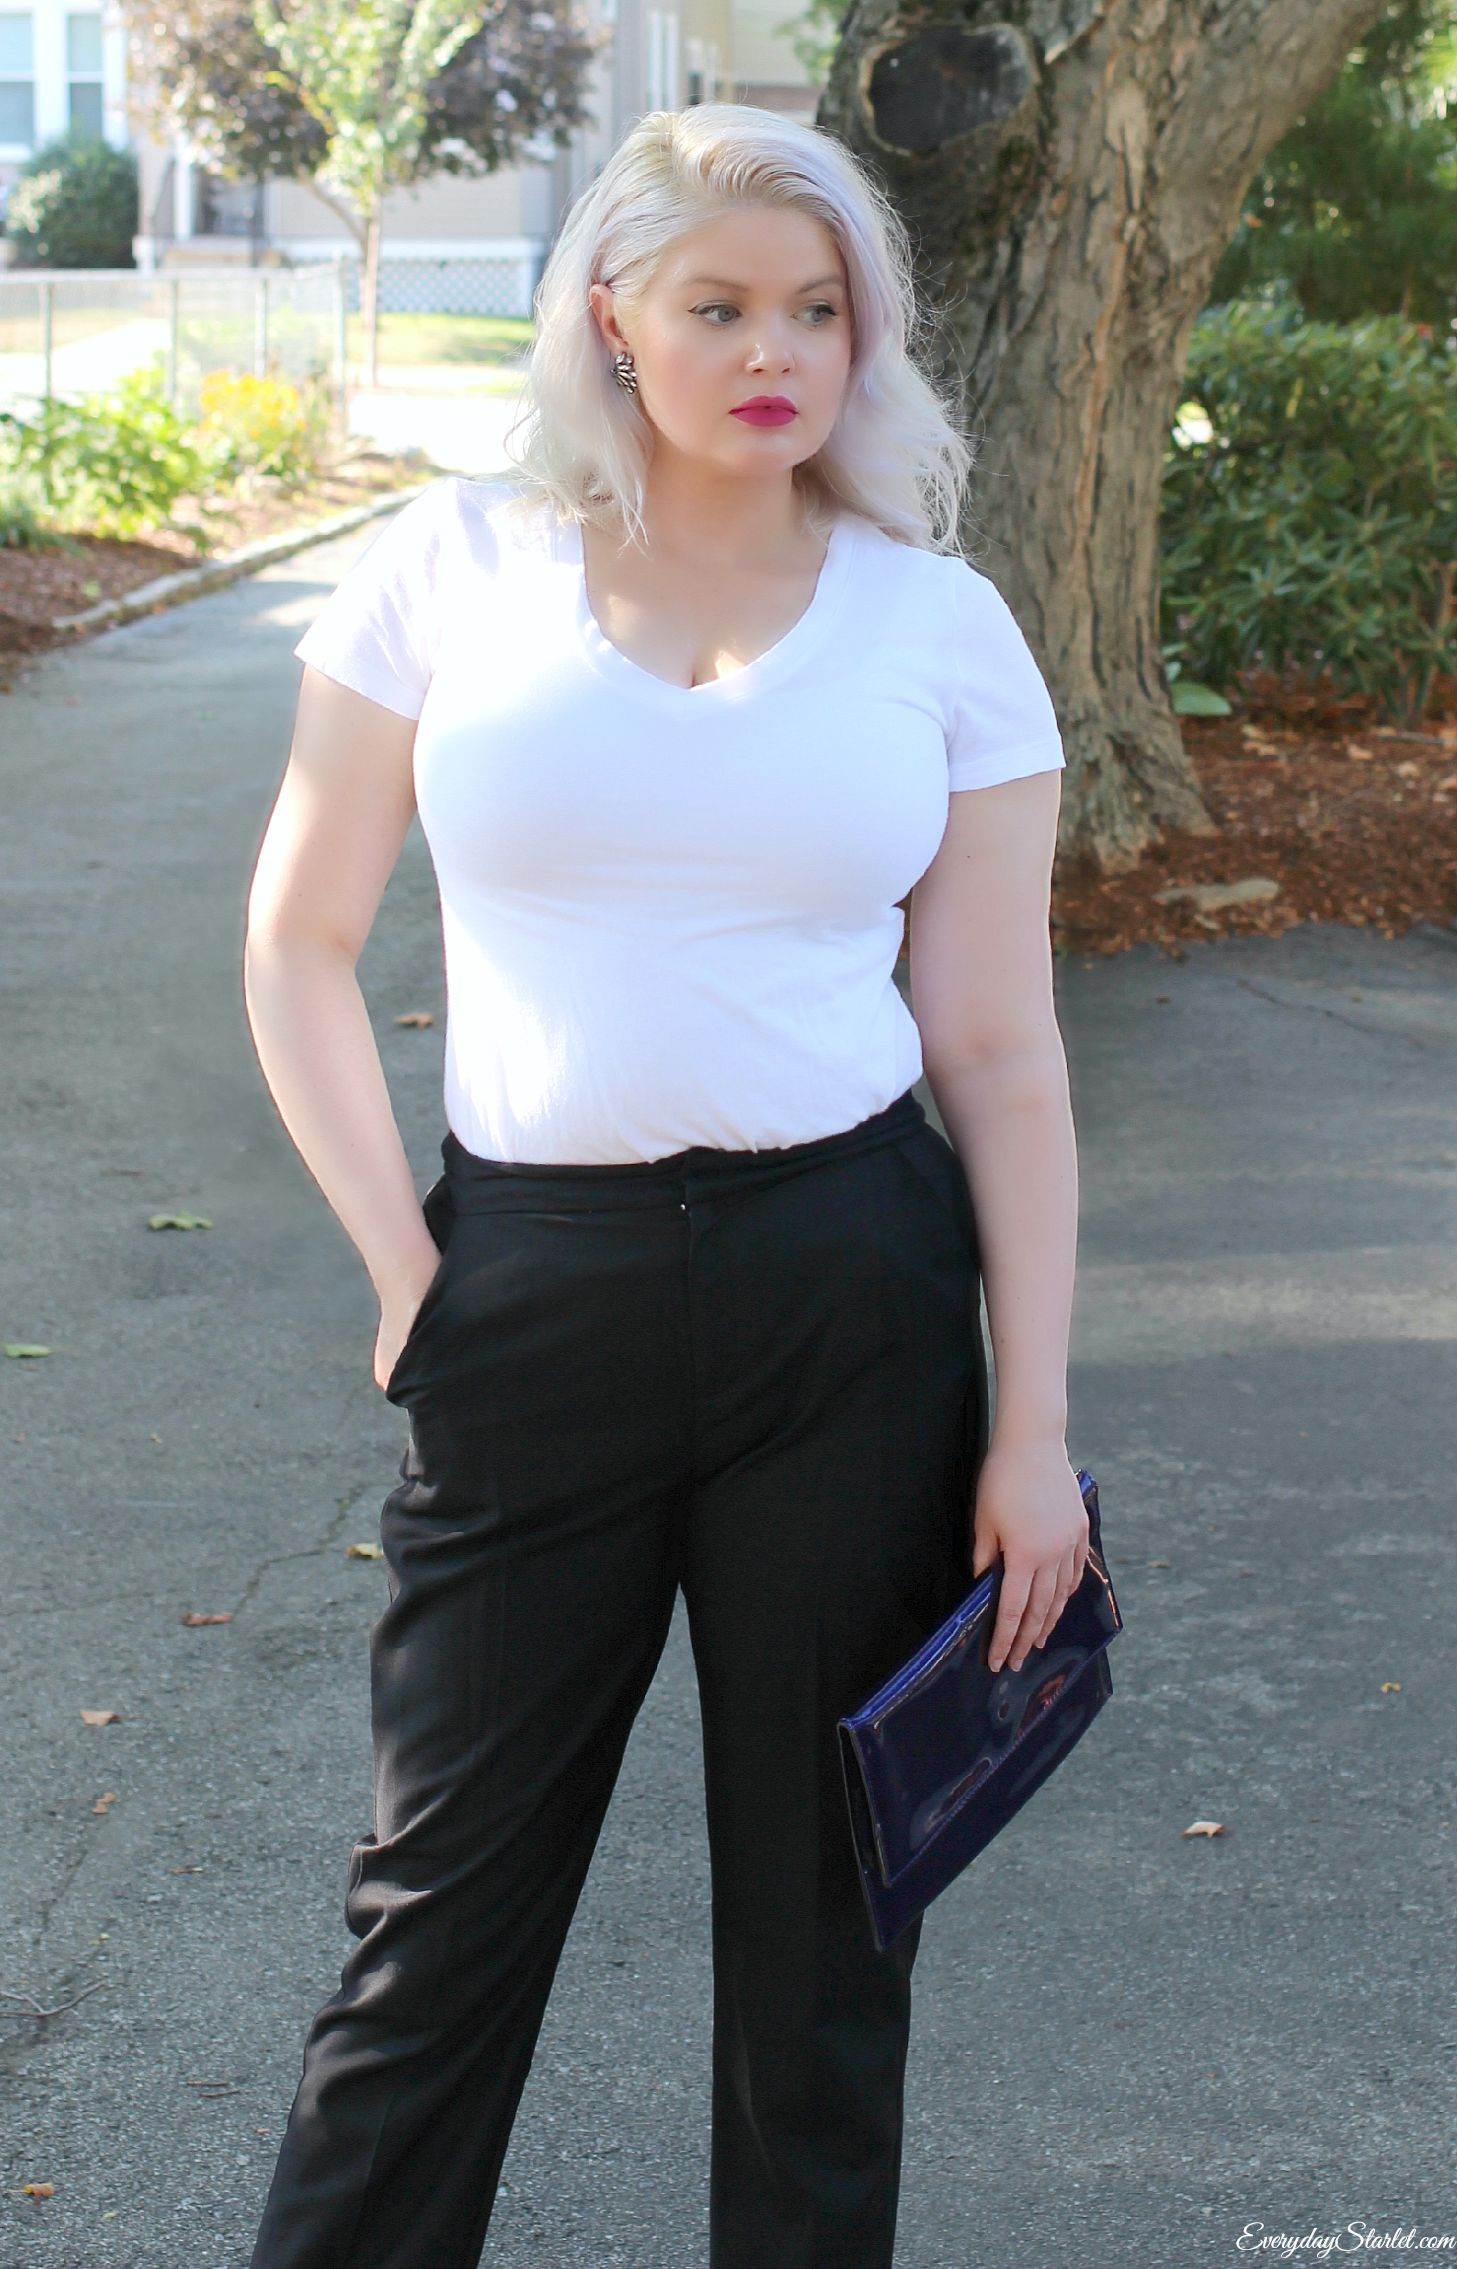 WERK!!!!  Who says curves aren't sexy?  There is so much yes in this photo.  Girls with a more ample bust should not shy away from white or from a more fitted shirt.  I like the confidence this woman exudes and I like the different take on a classic menswear look.